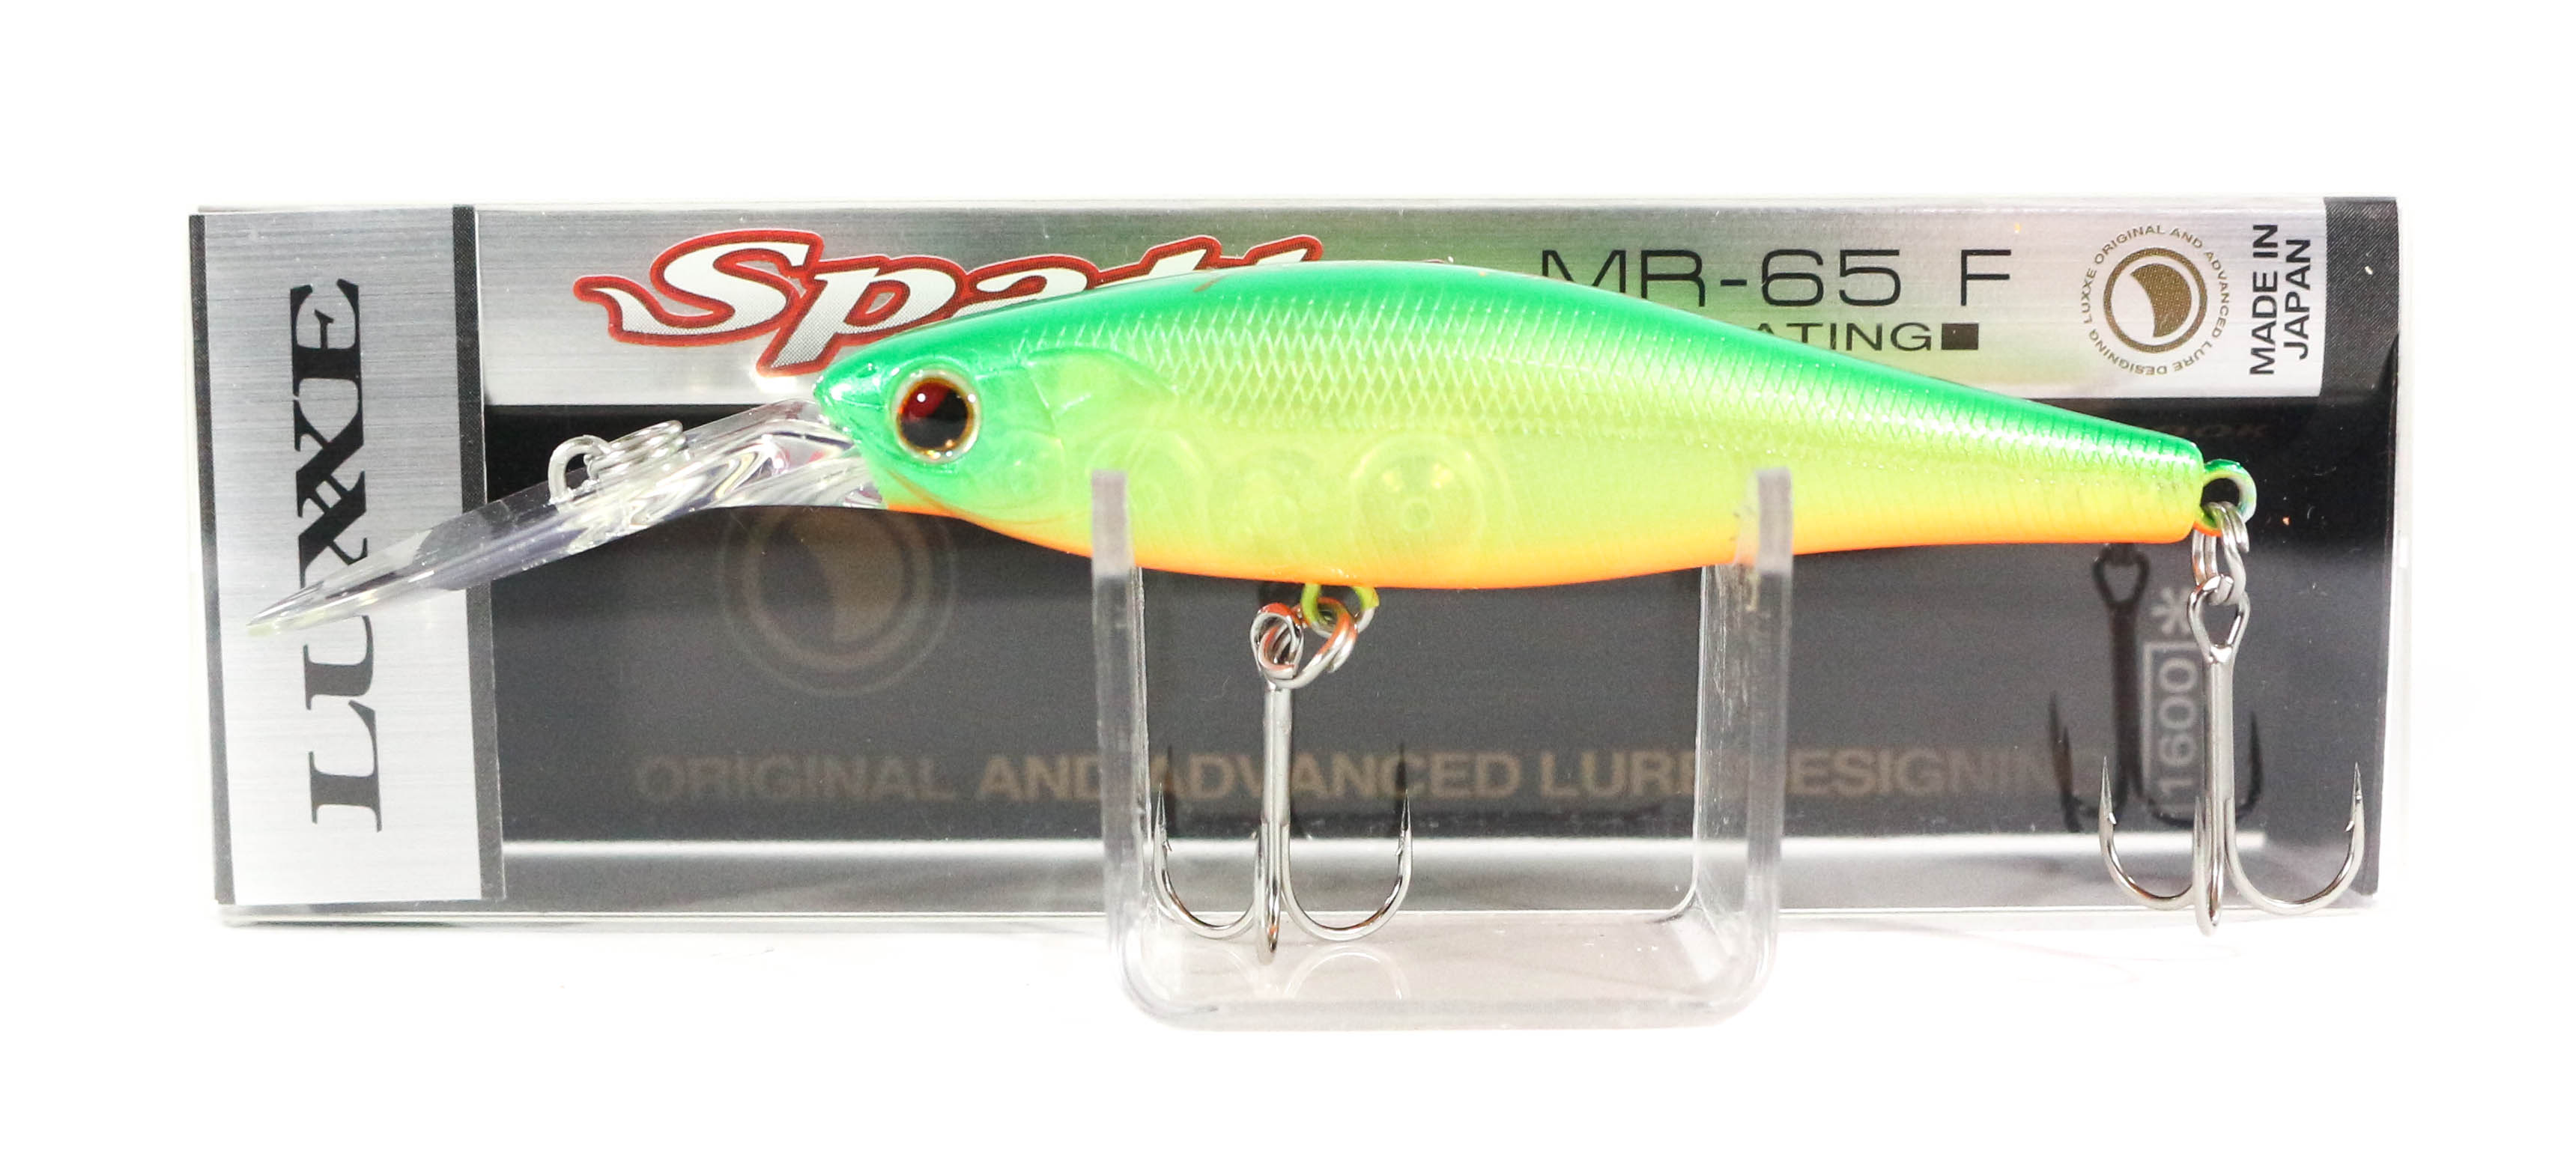 Sale Gamakatsu Spatt MR 65F Floating Lure 2 Lime Chart (1704)